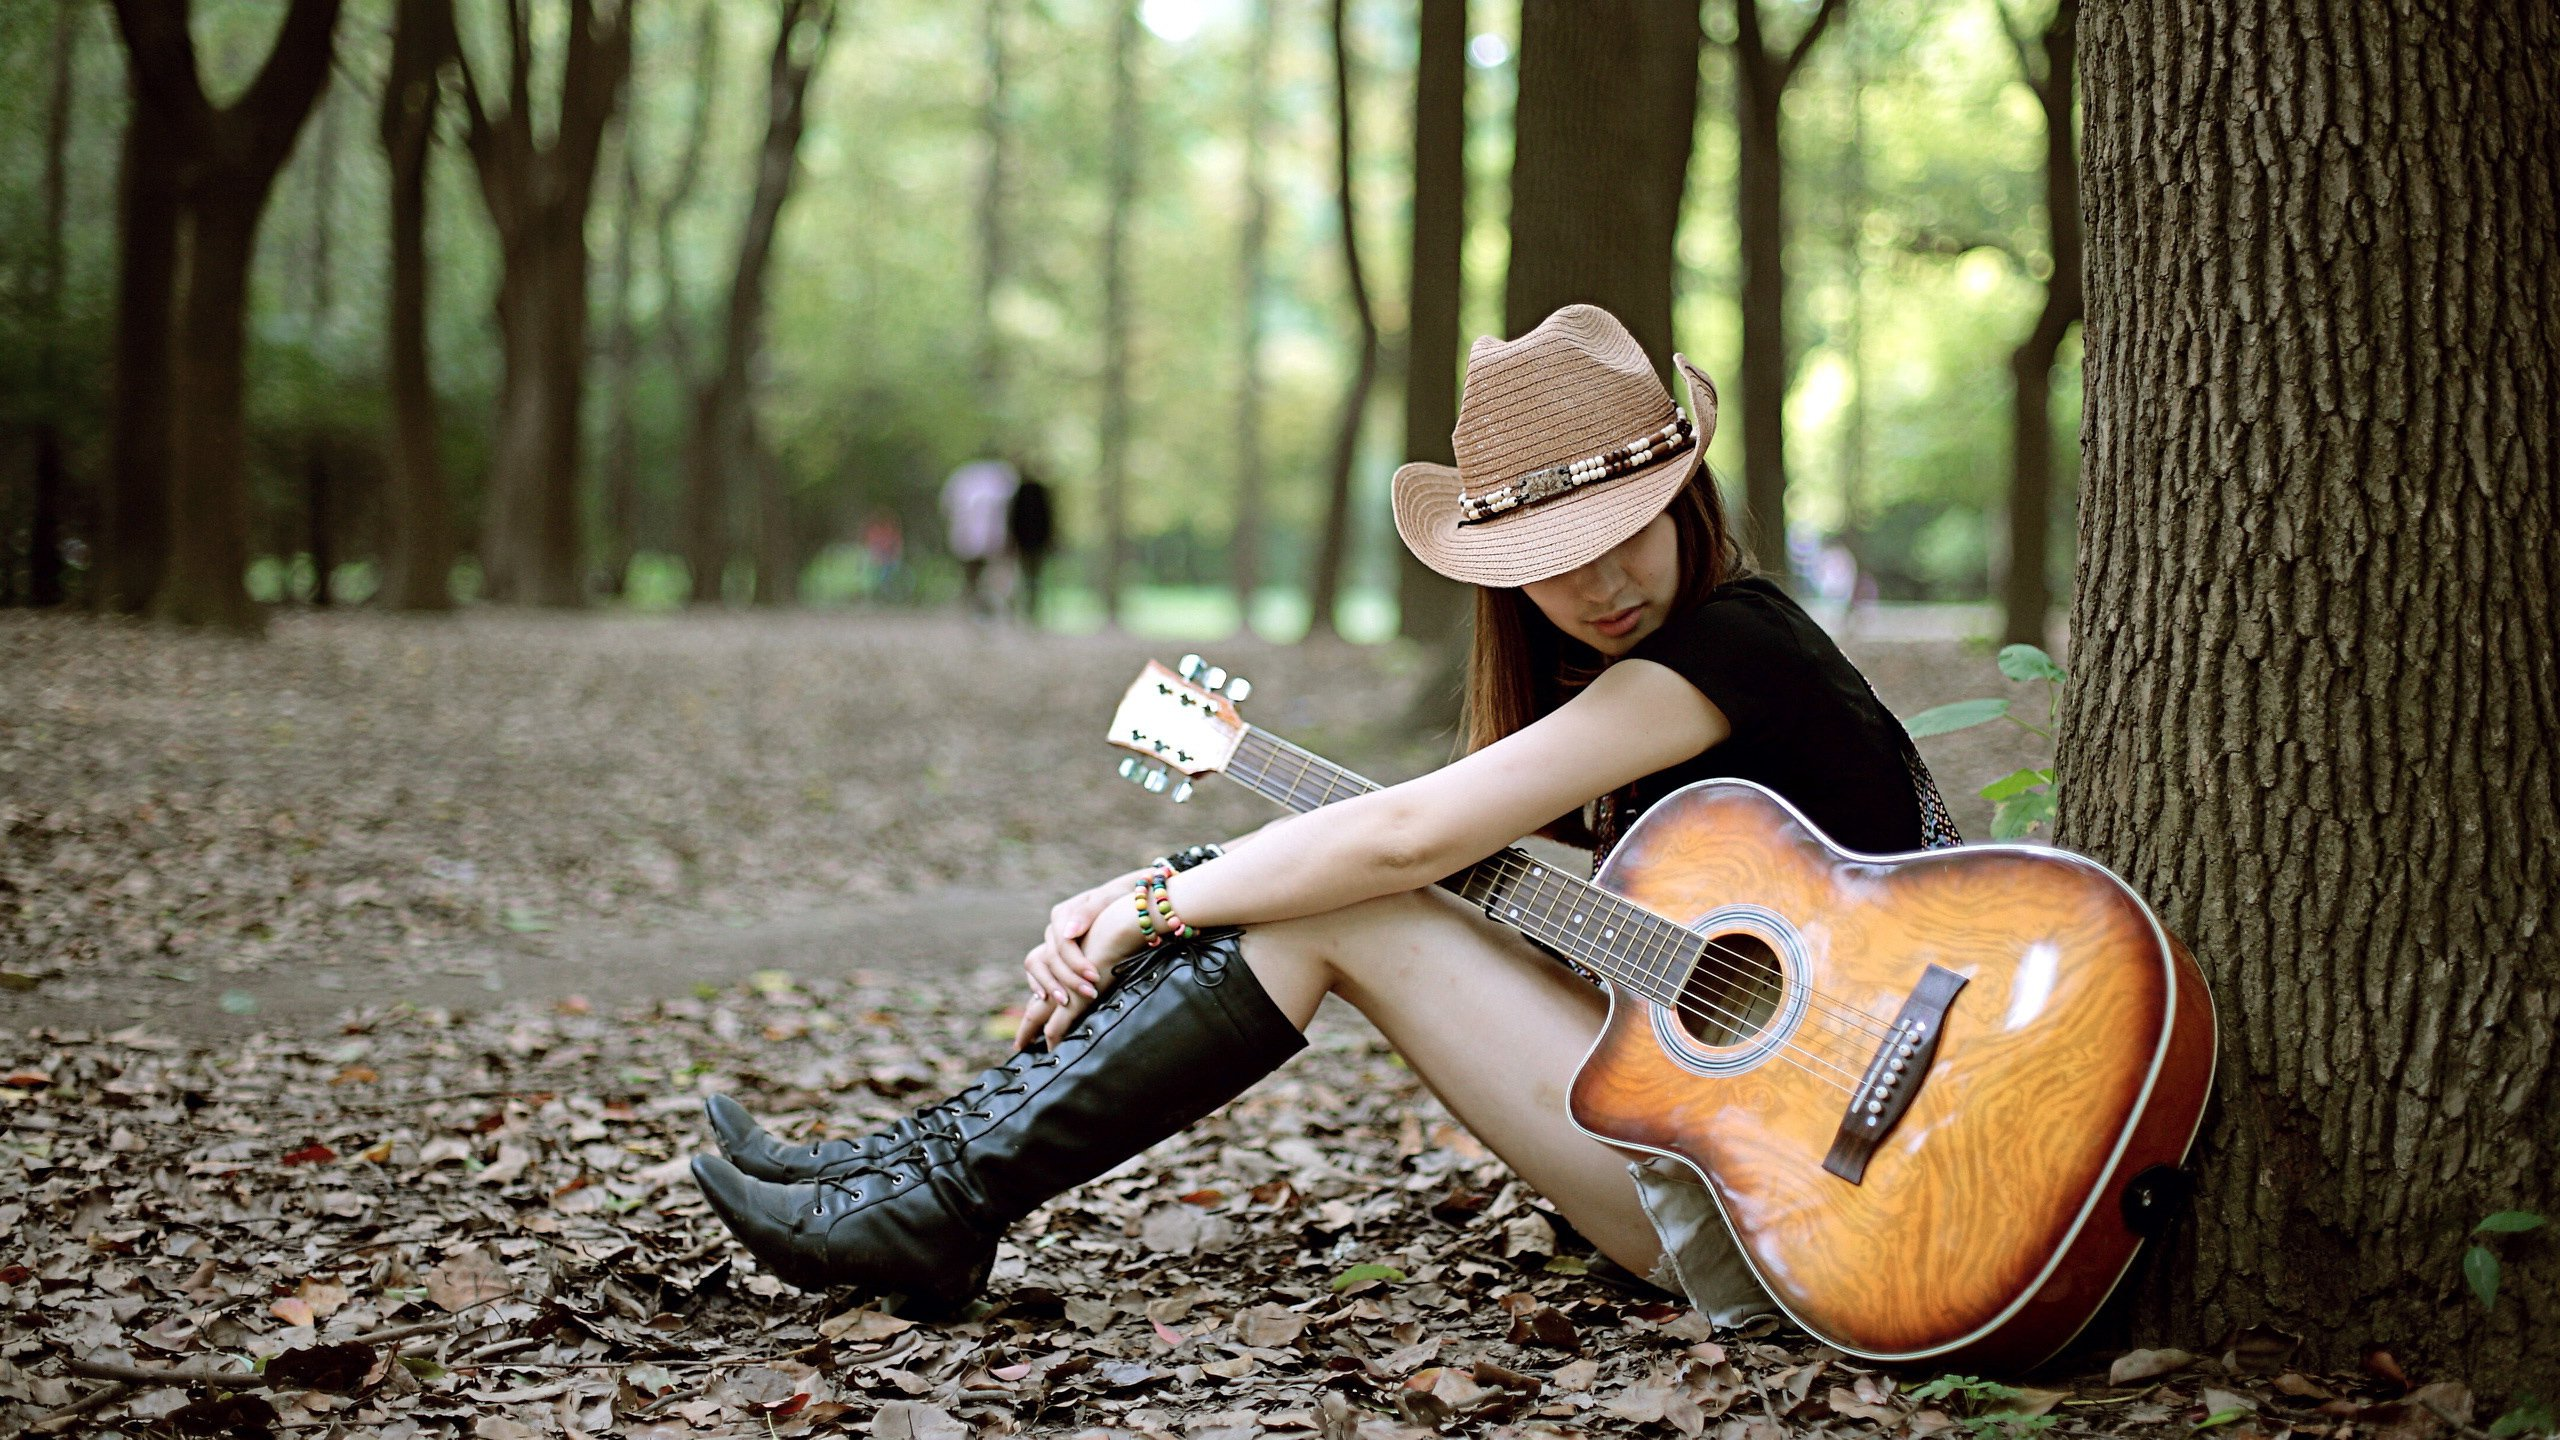 Love Wallpaper With Guitar : Sad Girls With Guitar www.pixshark.com - Images ...